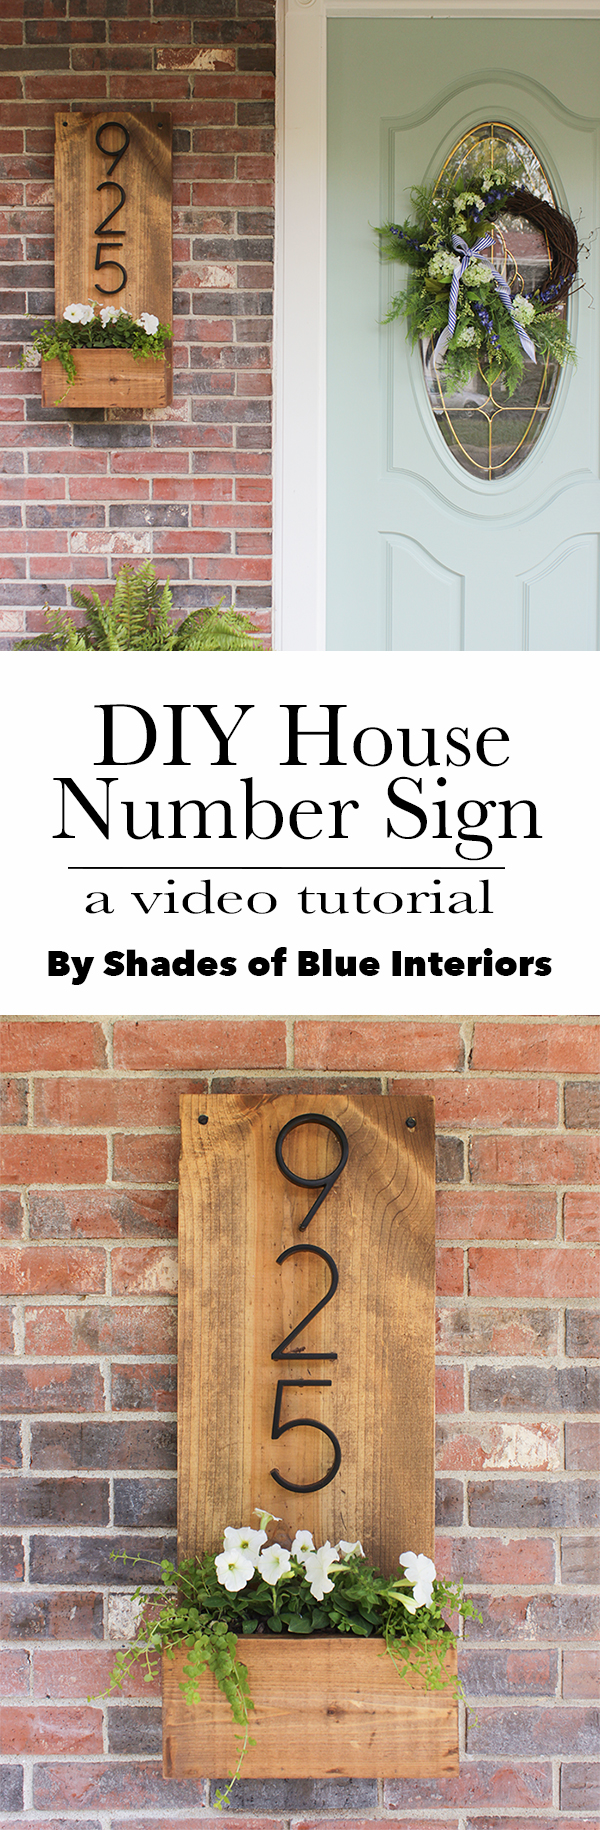 DIY-House-Number-Sign